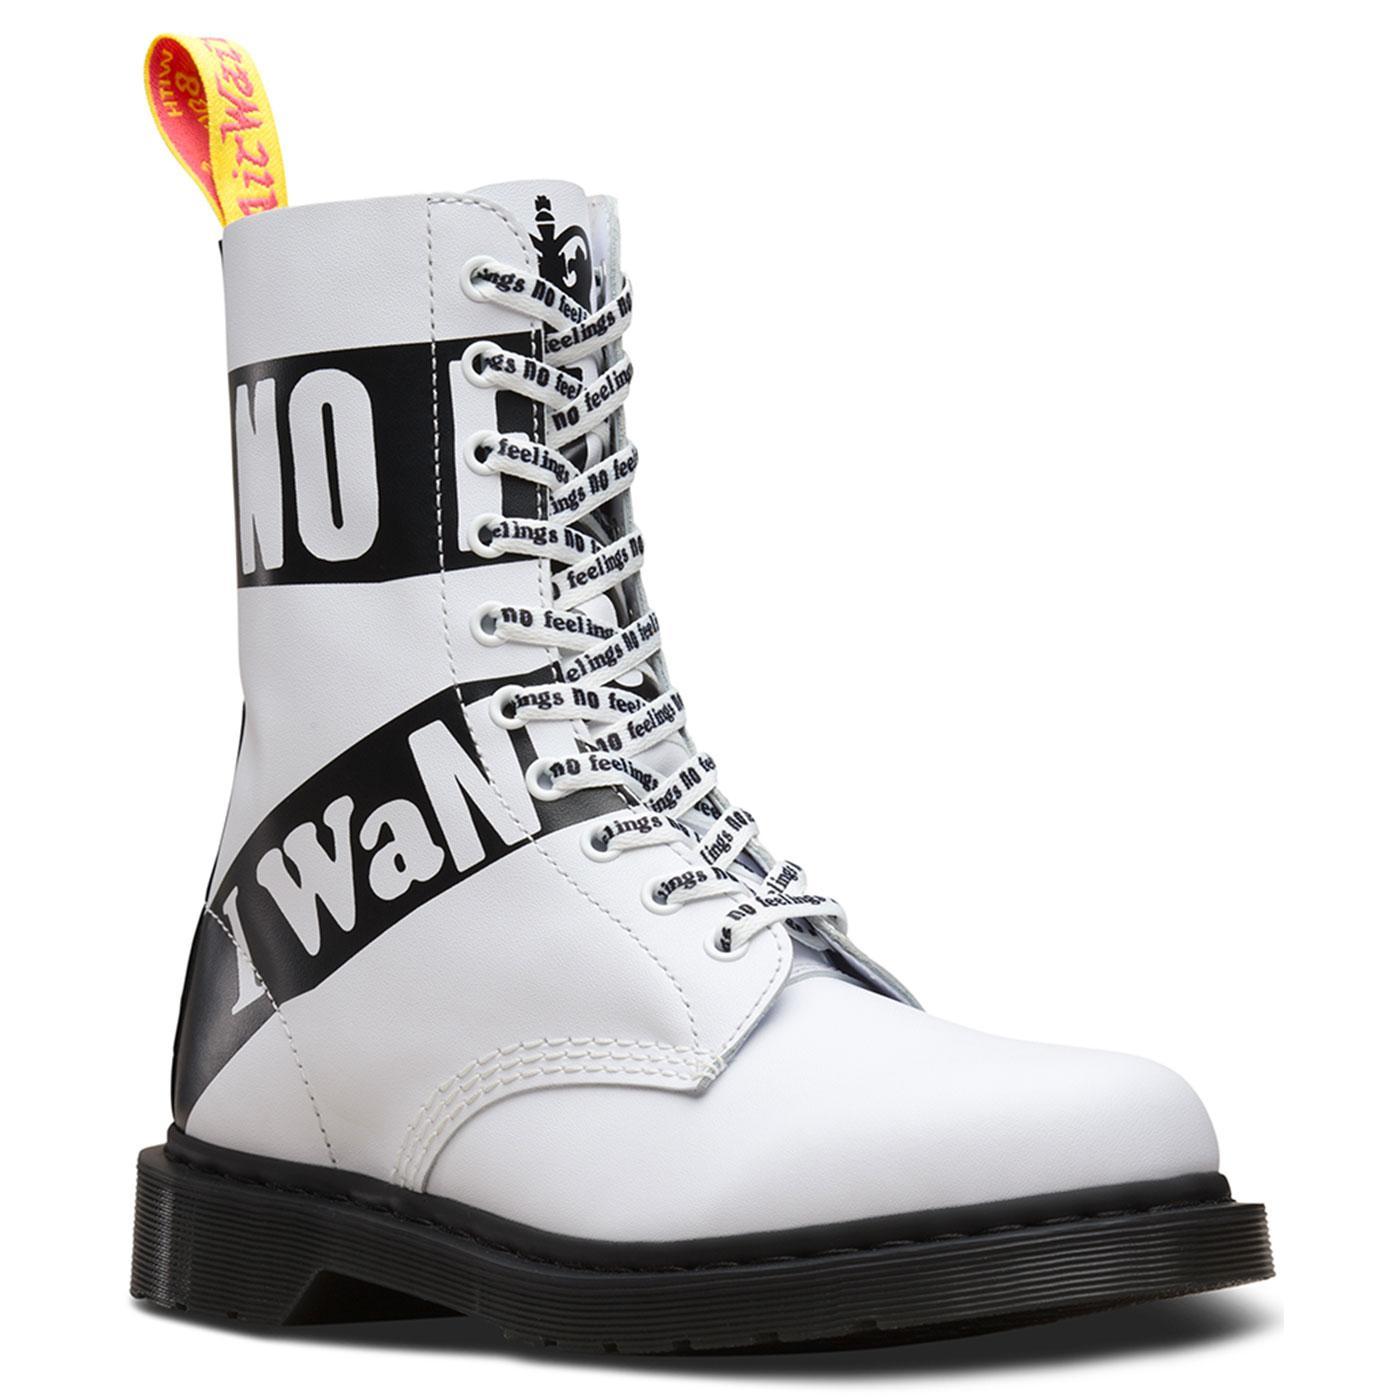 DR MARTENS x THE SEX PISTOLS Womens 1490 Boots